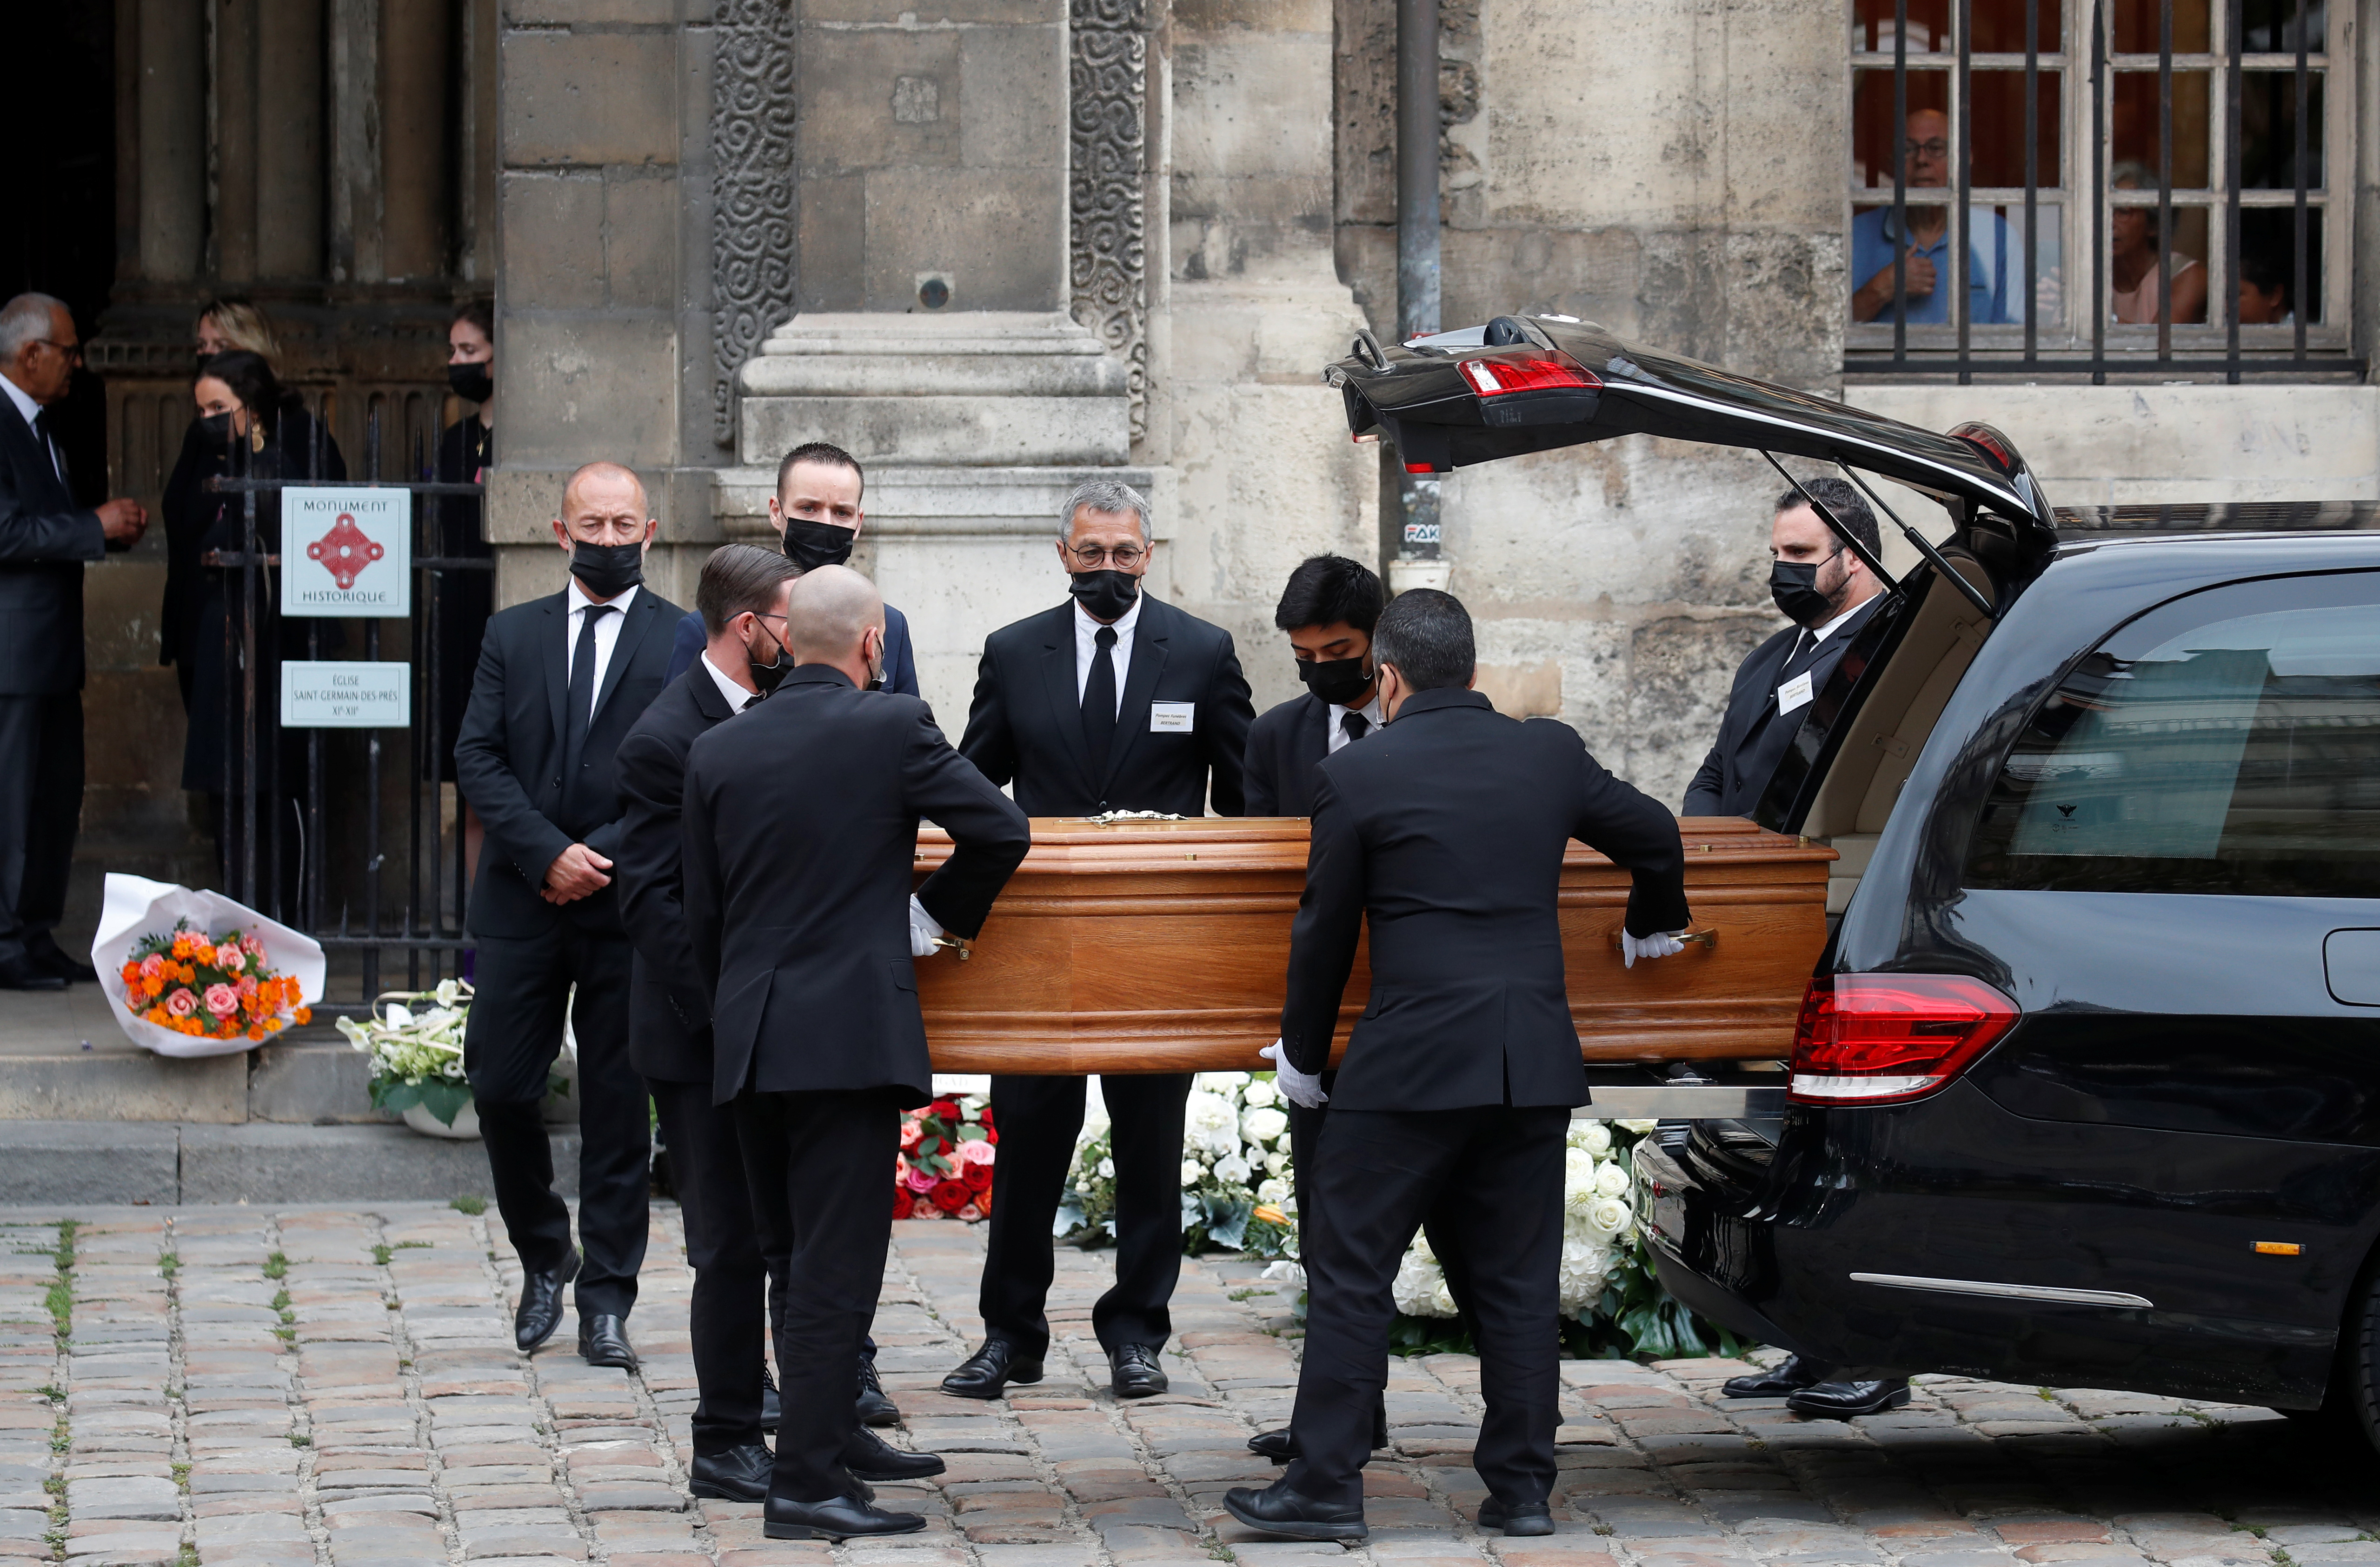 Pallbearers carry the coffin of late French actor Jean-Paul Belmondo as they arrive for the funeral ceremony at the Saint-Germain-des-Pres church in Paris, France, September 10, 2021. REUTERS/Gonzalo Fuentes